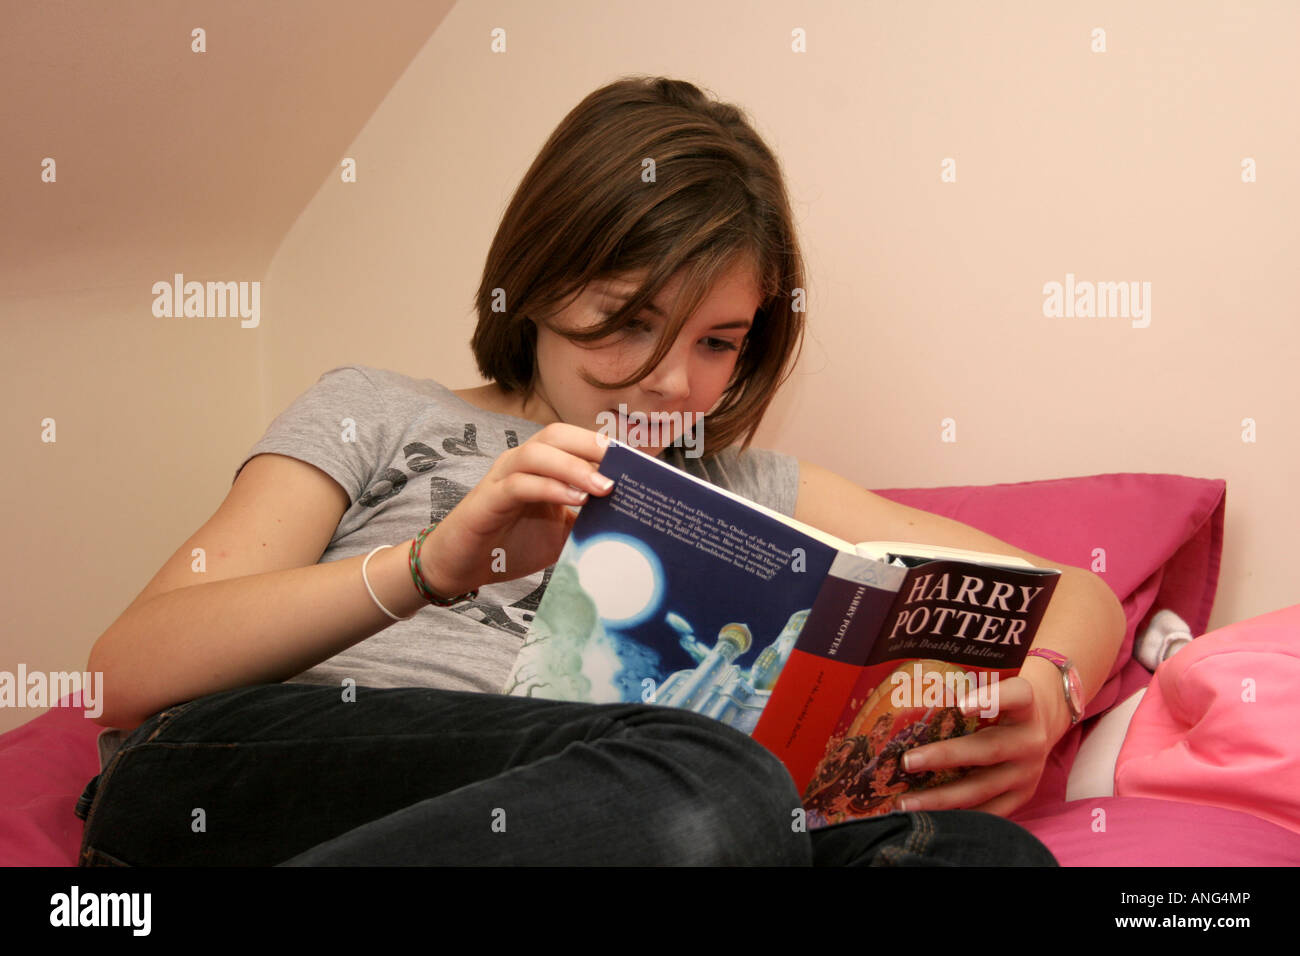 A teenage girl reading the final Harry Potter book. - Stock Image